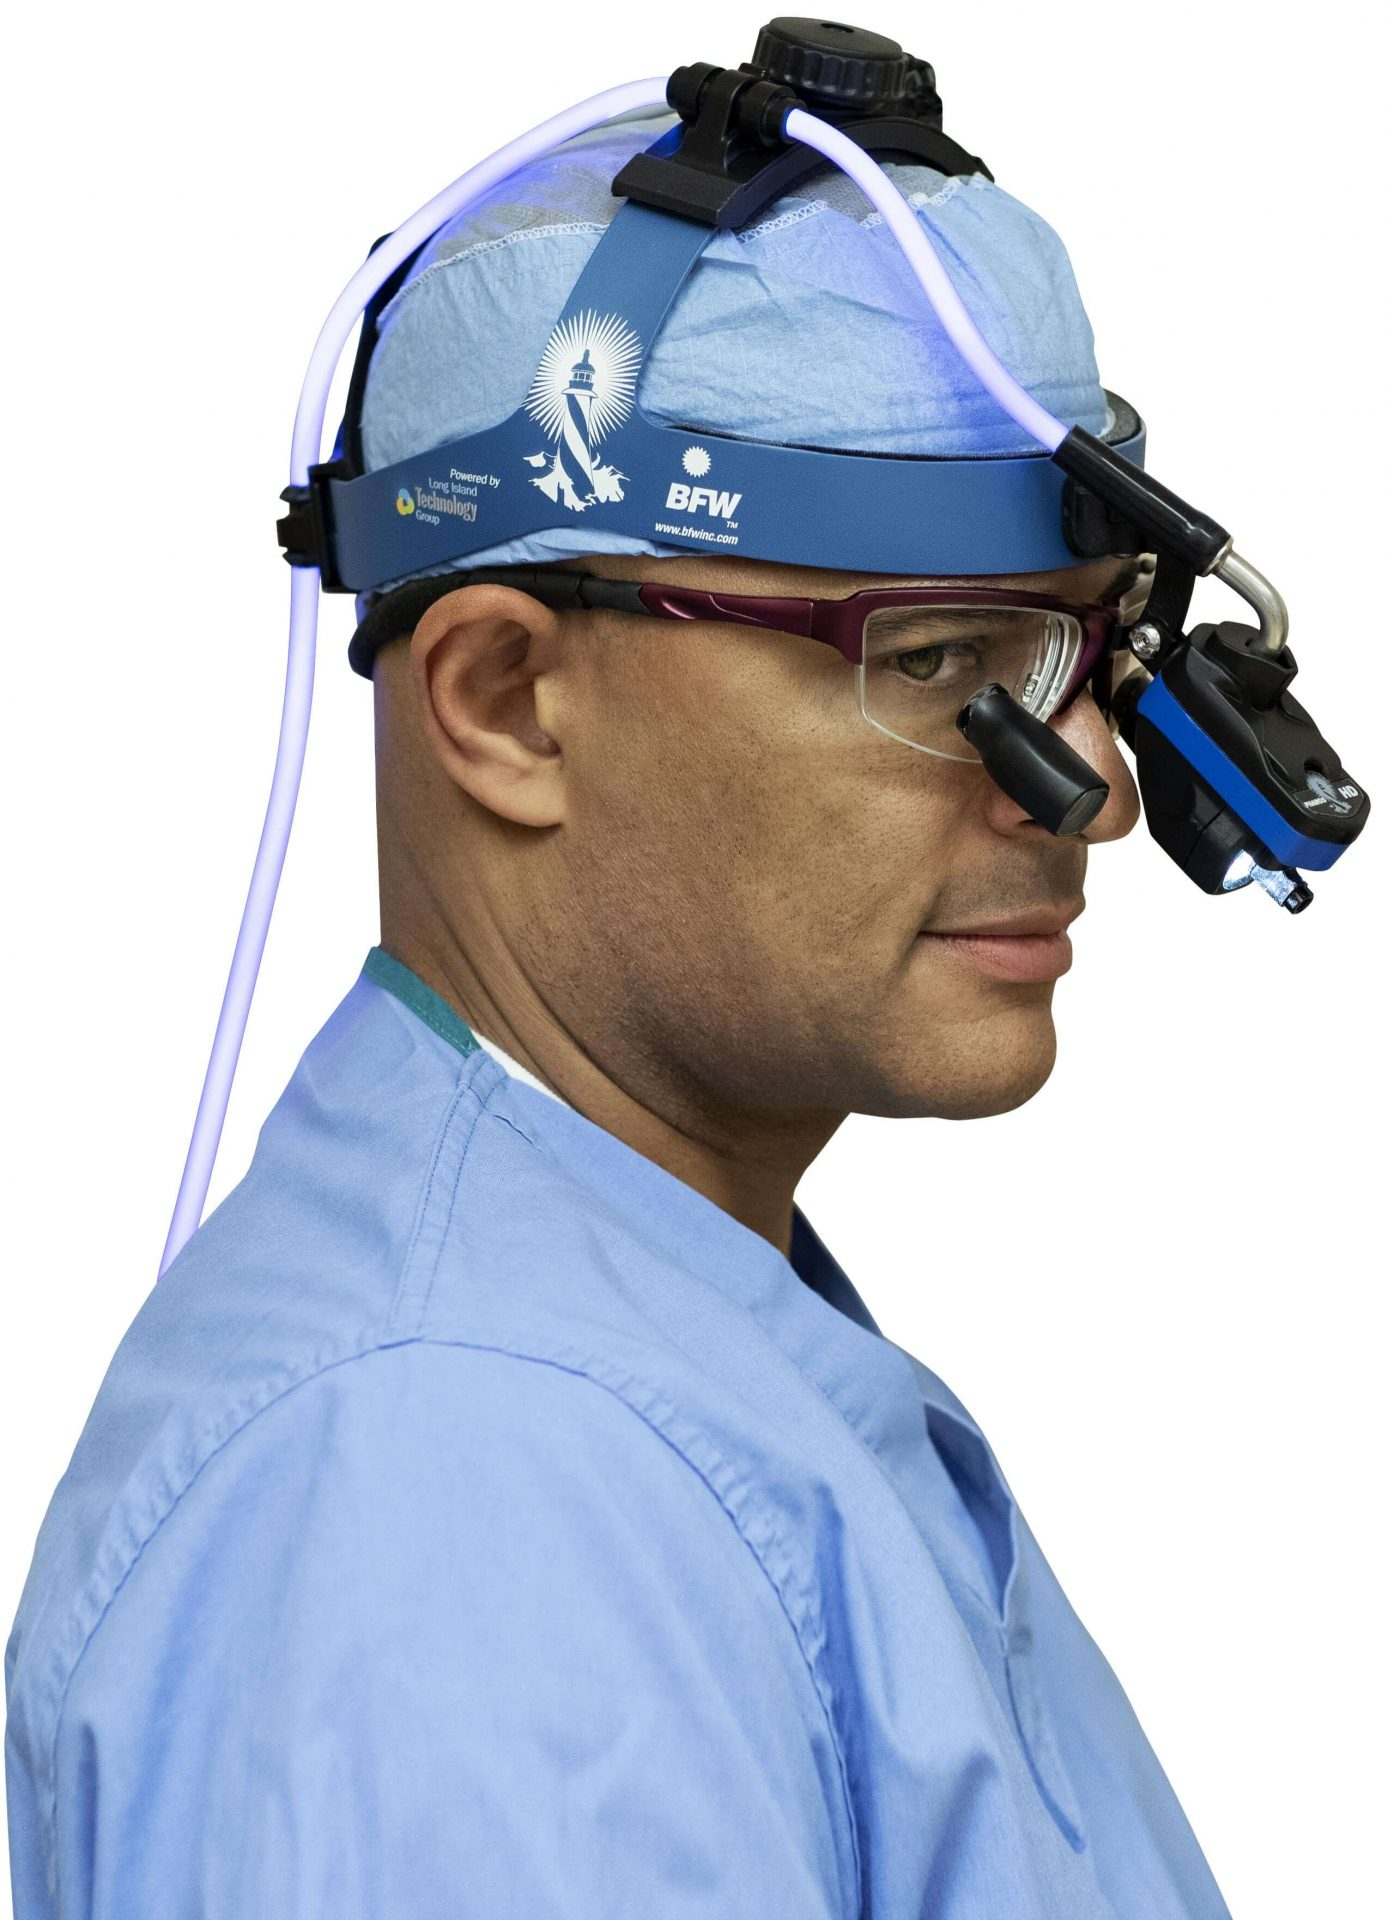 Pharos HD Surgical Camera